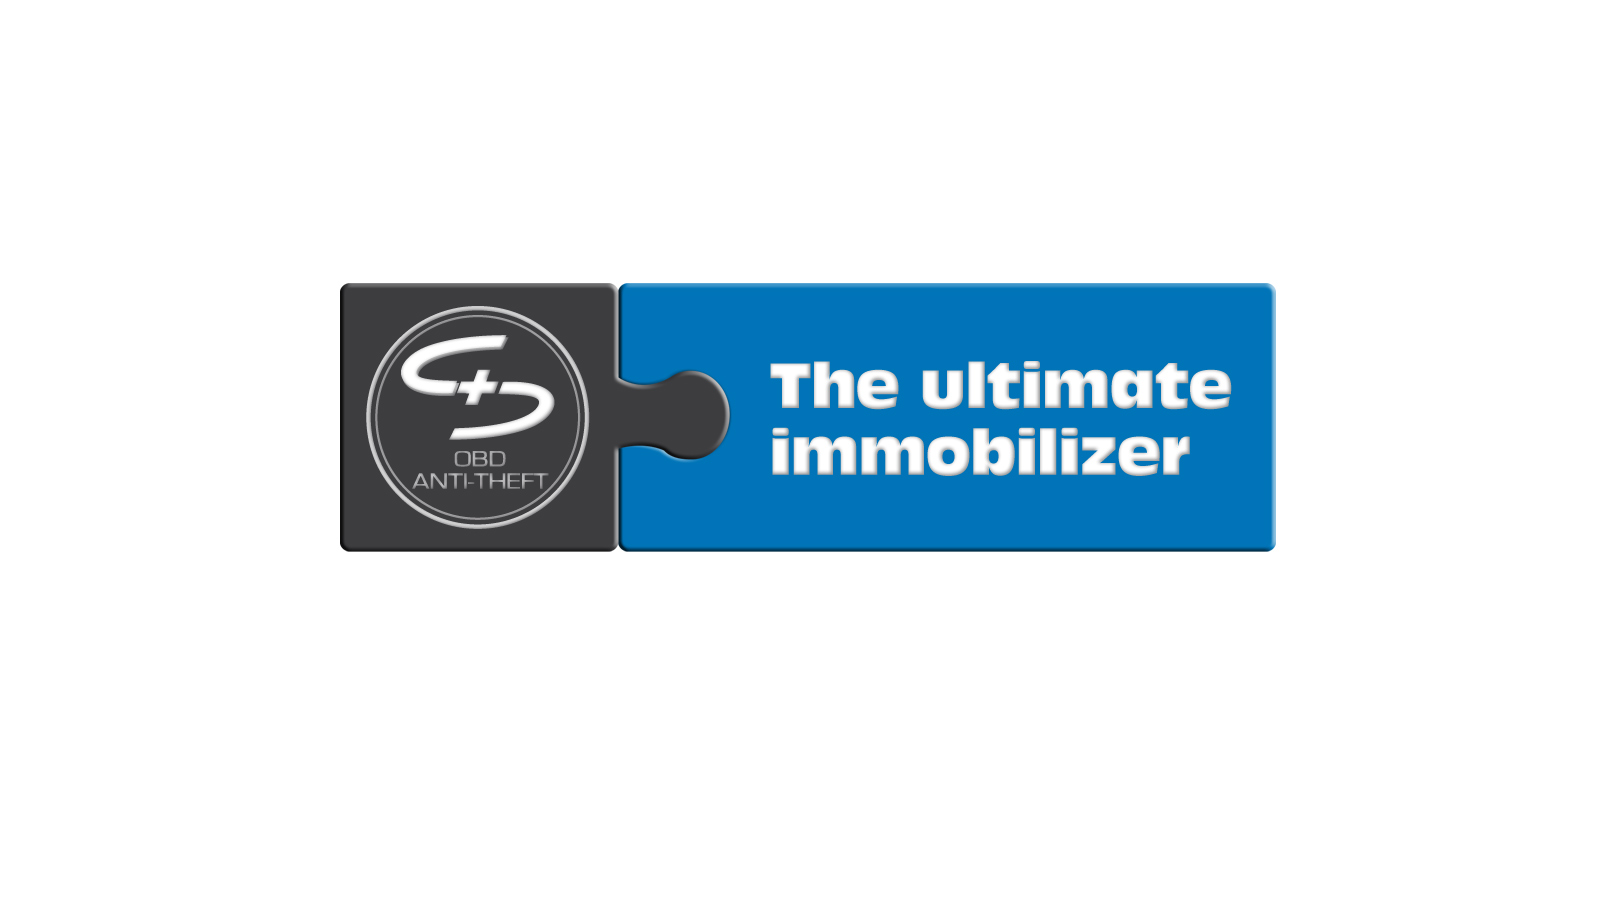 obd antitheft ultimate immobilizer